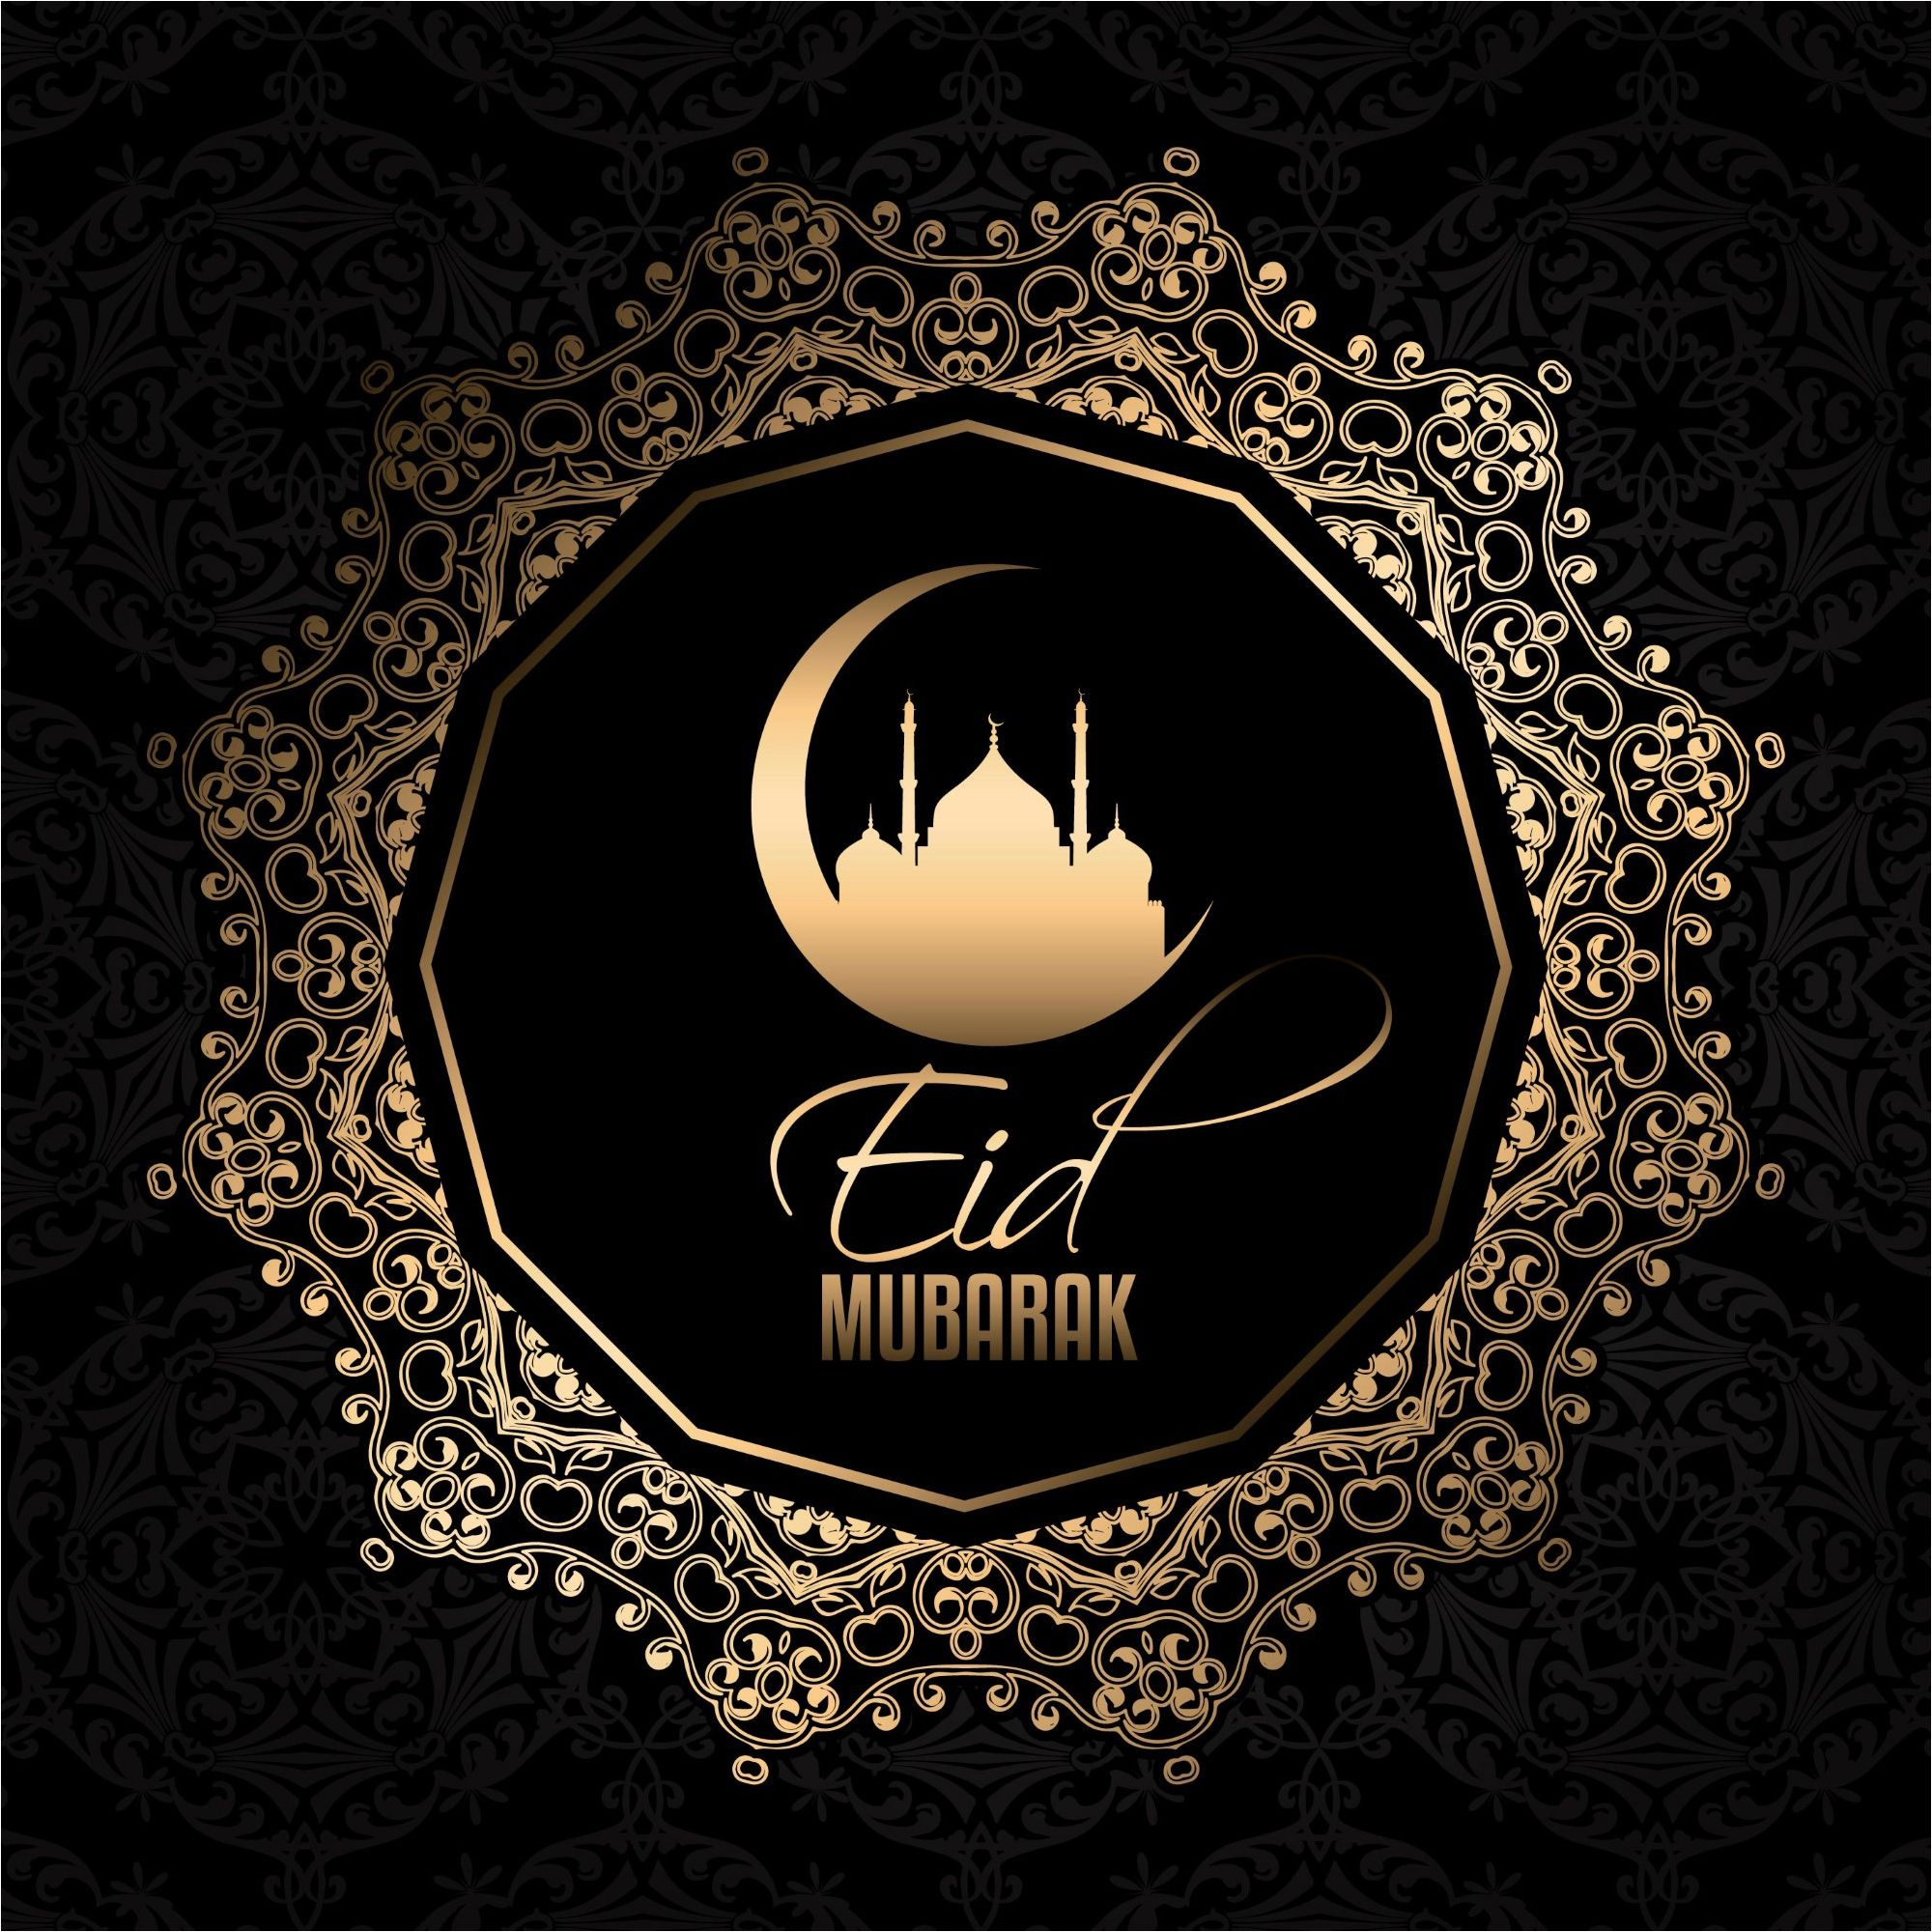 Black color design background eid mubarak greetings vector http black color design background eid mubarak greetings vector httpwww vector kristyandbryce Choice Image